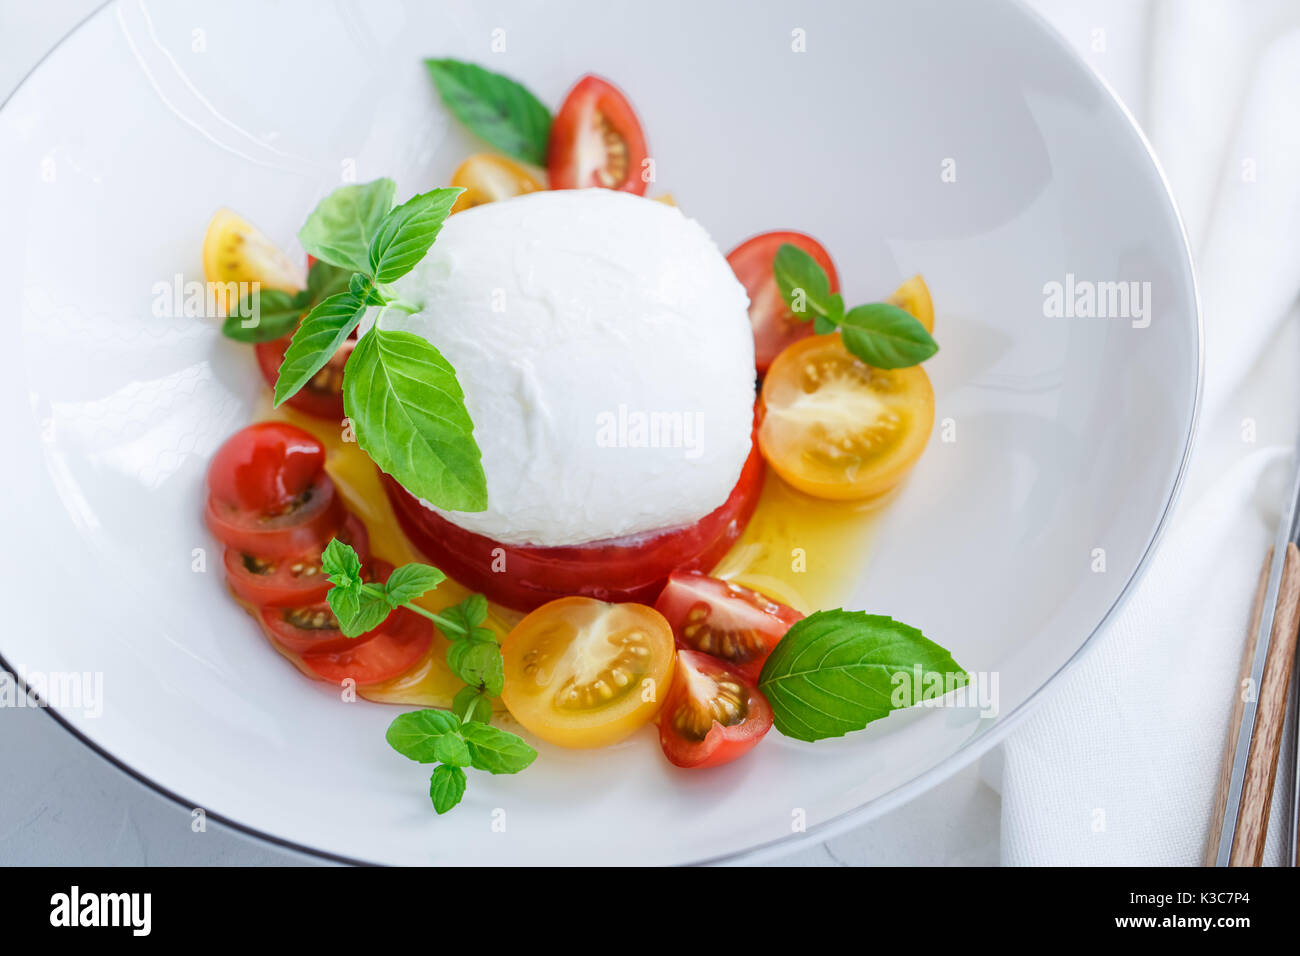 Caprese salad with red and yellow tomatoes, mozarella, basil and olive oil. Close view. White background. - Stock Image